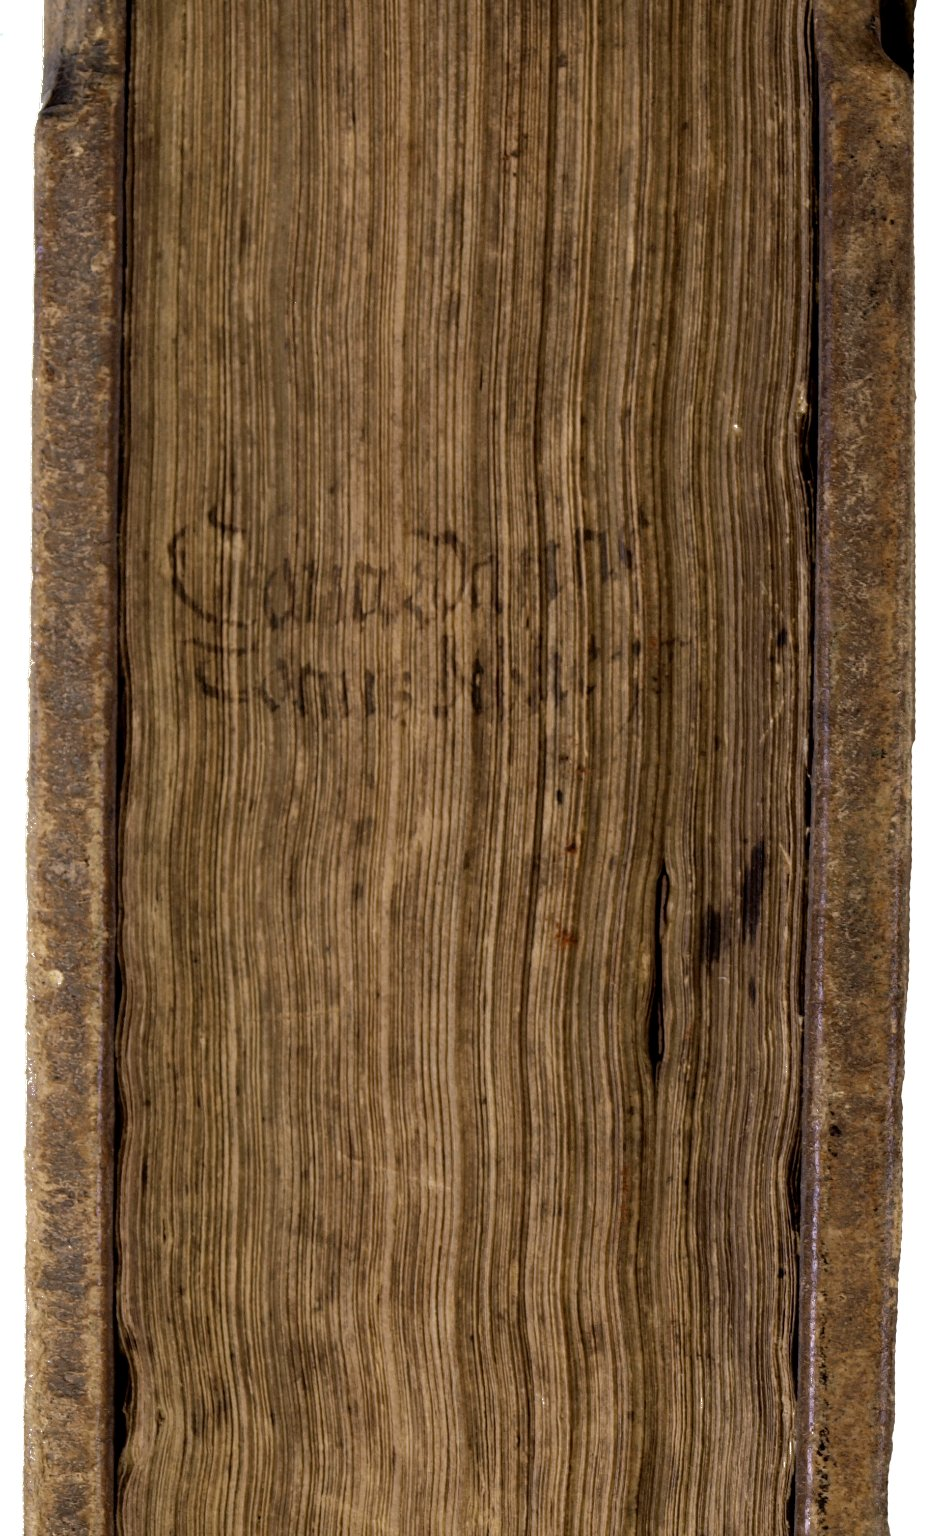 Fore-edge, BS423 C6 1521 Cage fo..